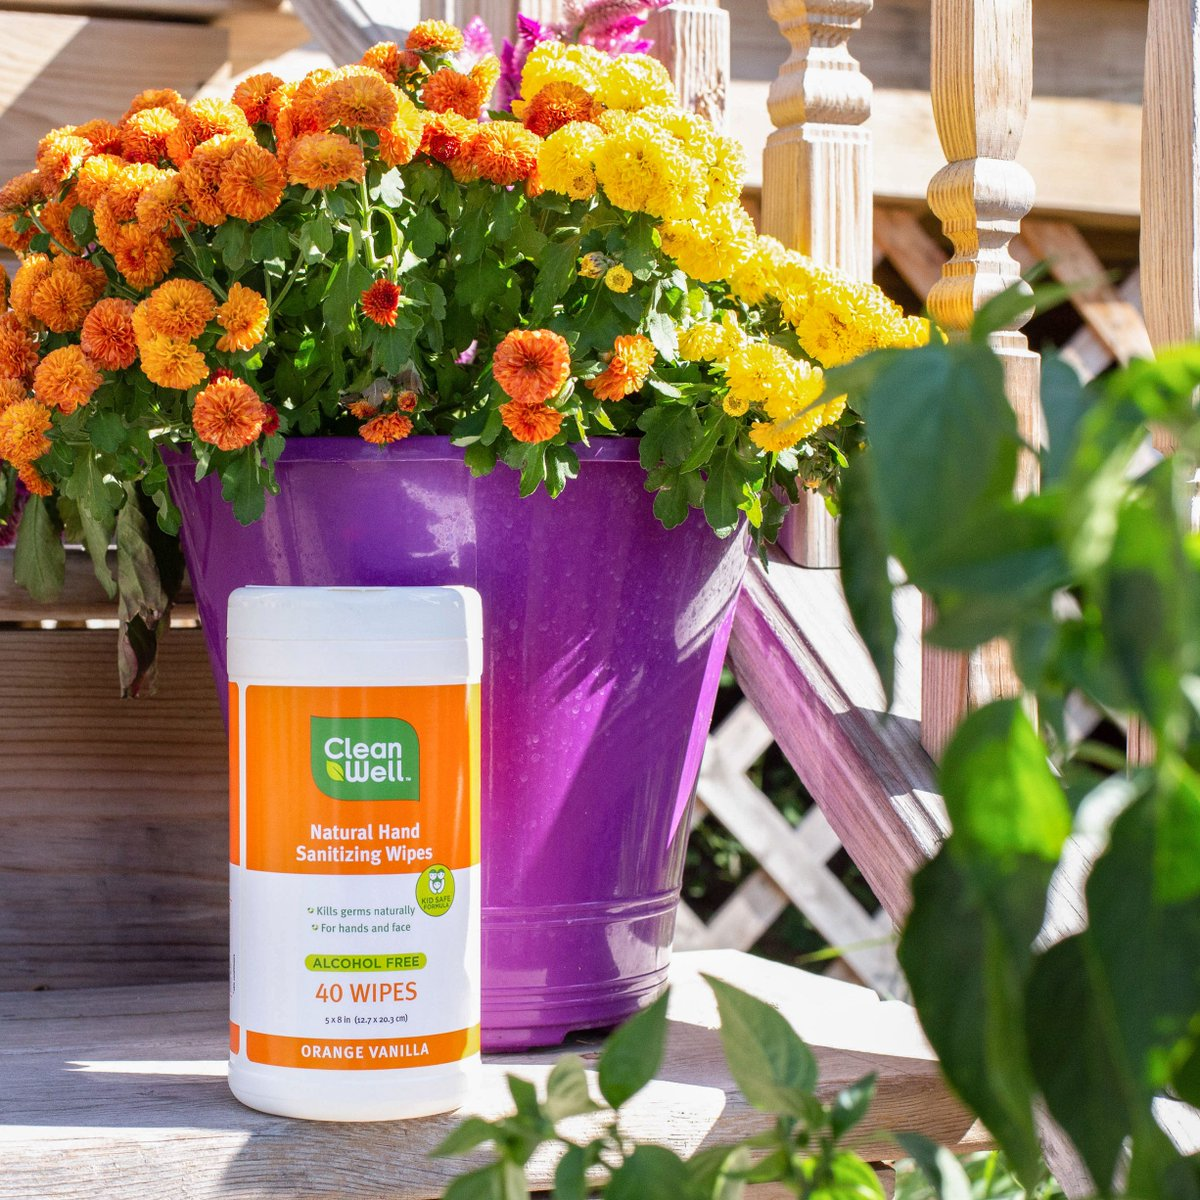 Keeping your family germ free never goes out of season.  #germfree https://t.co/OmJFoNswcR